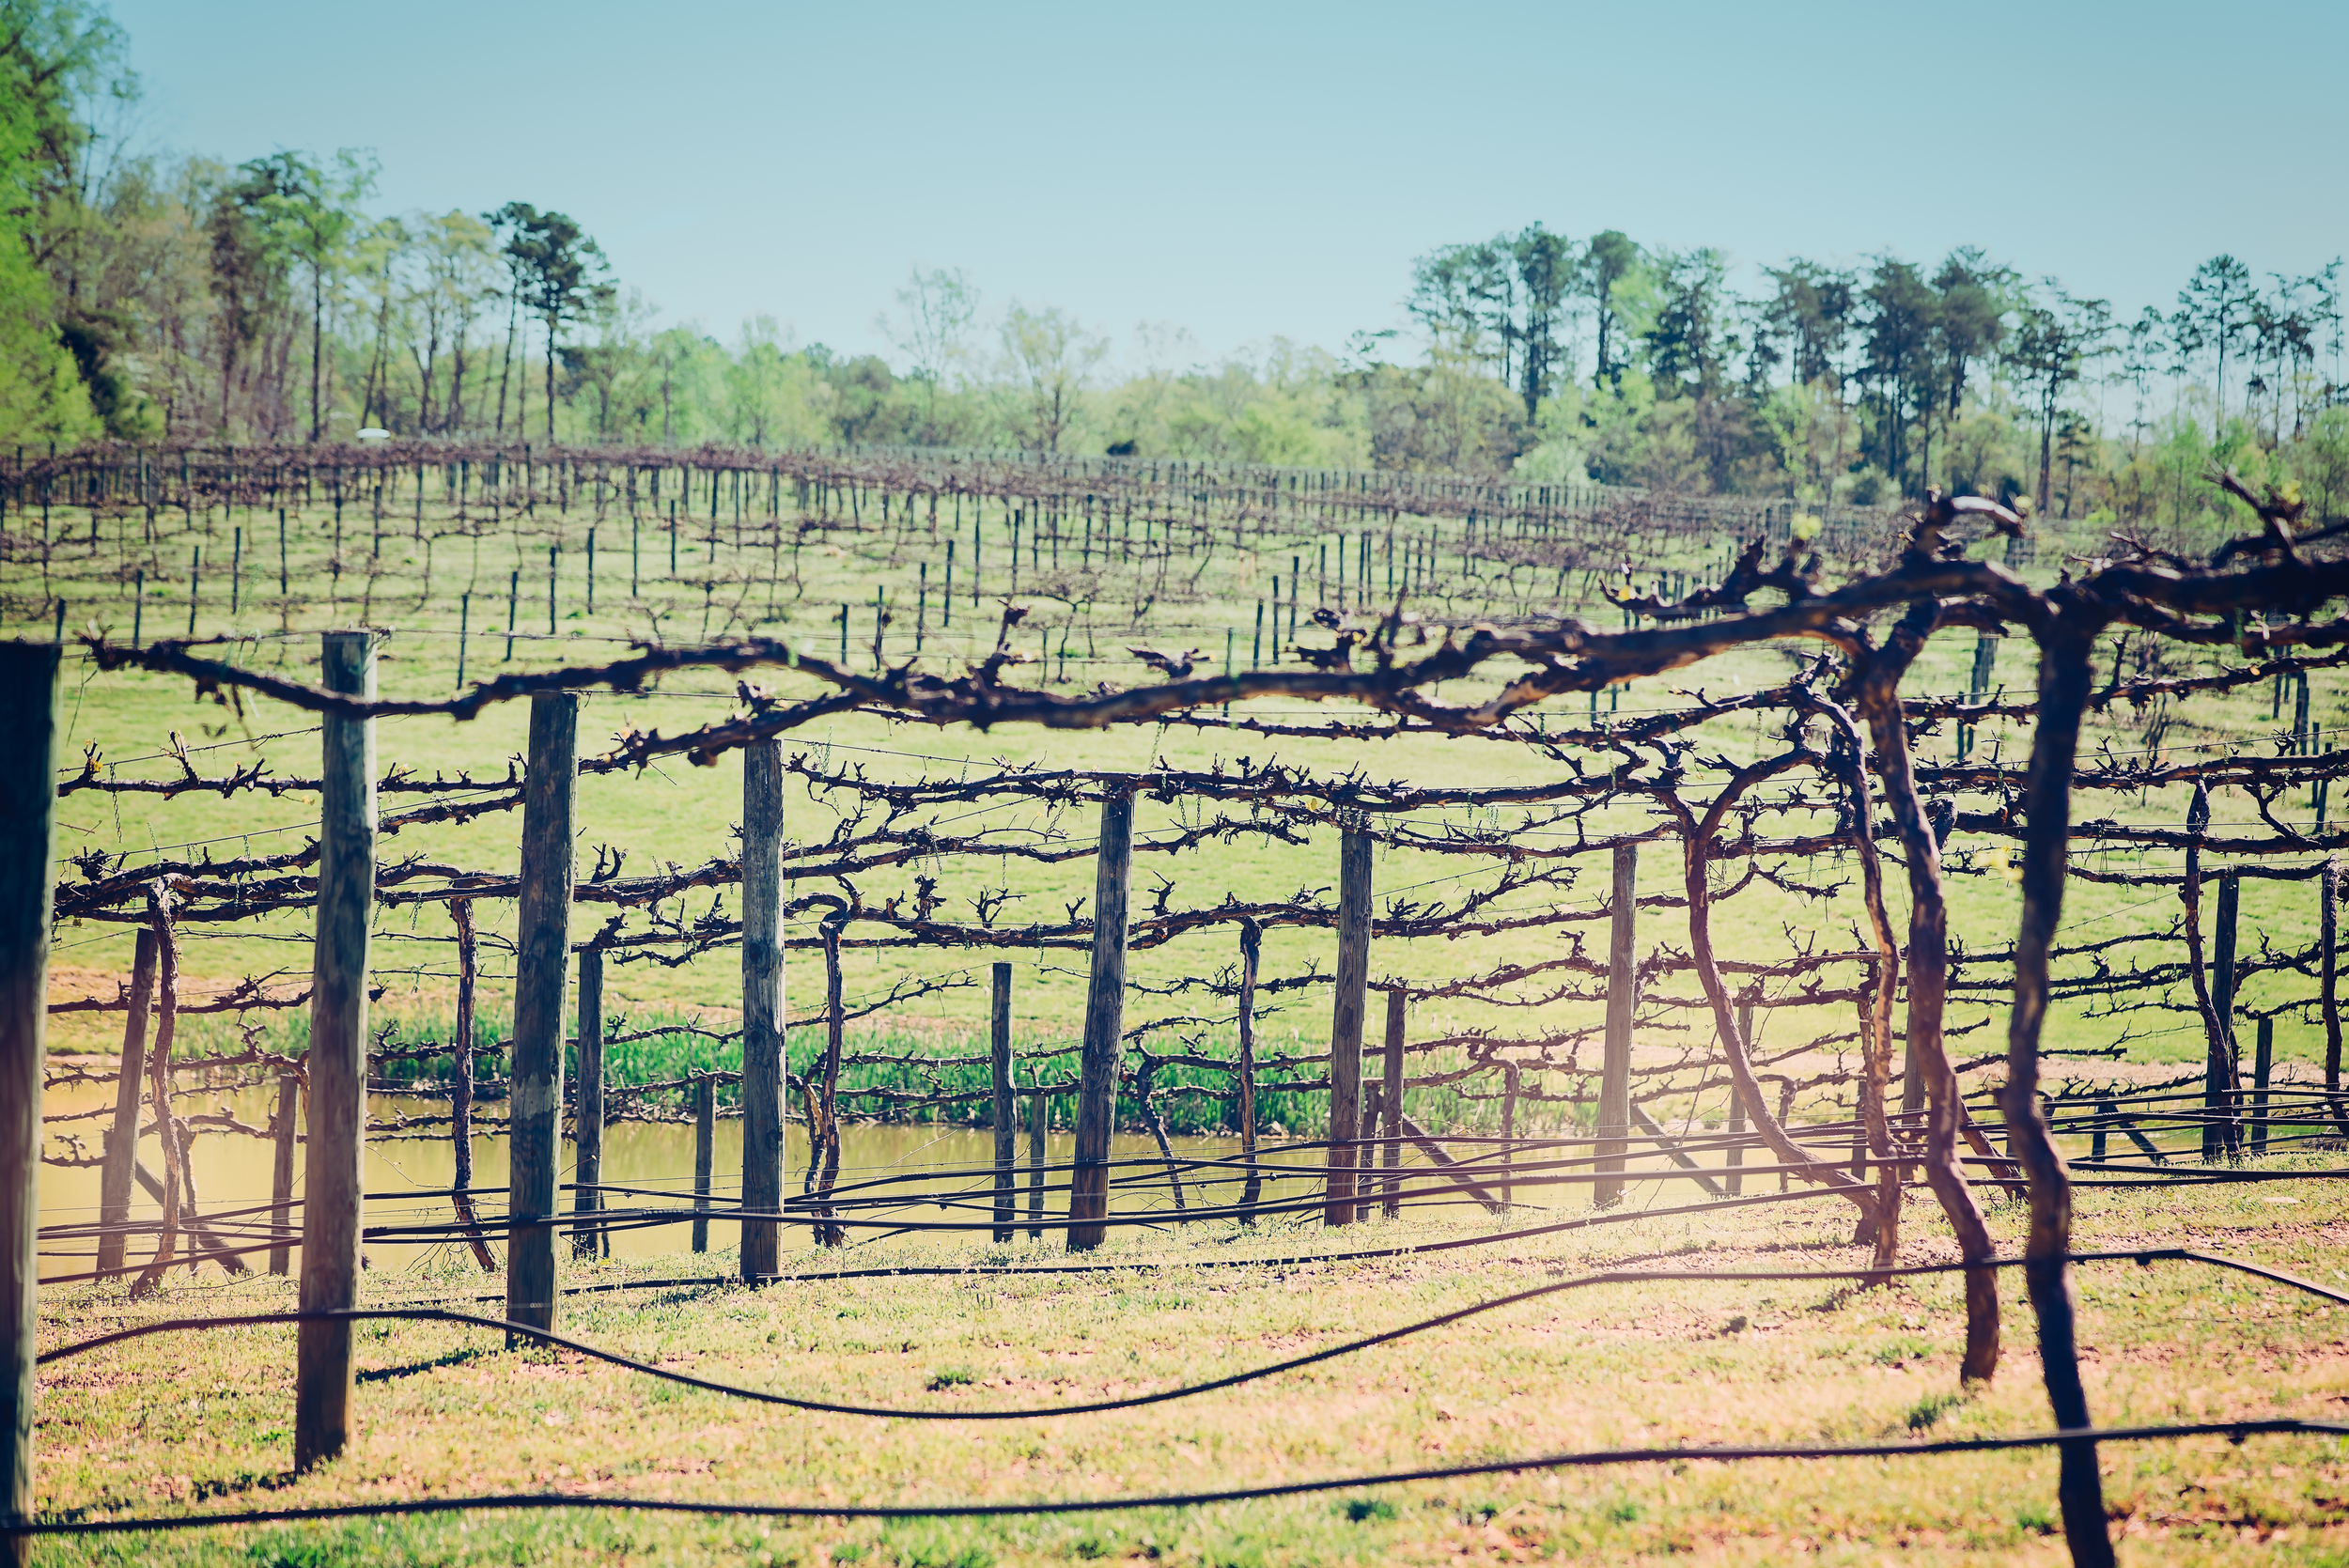 View of the vines at the Rocky River Vineyards, Midland, NC in early April